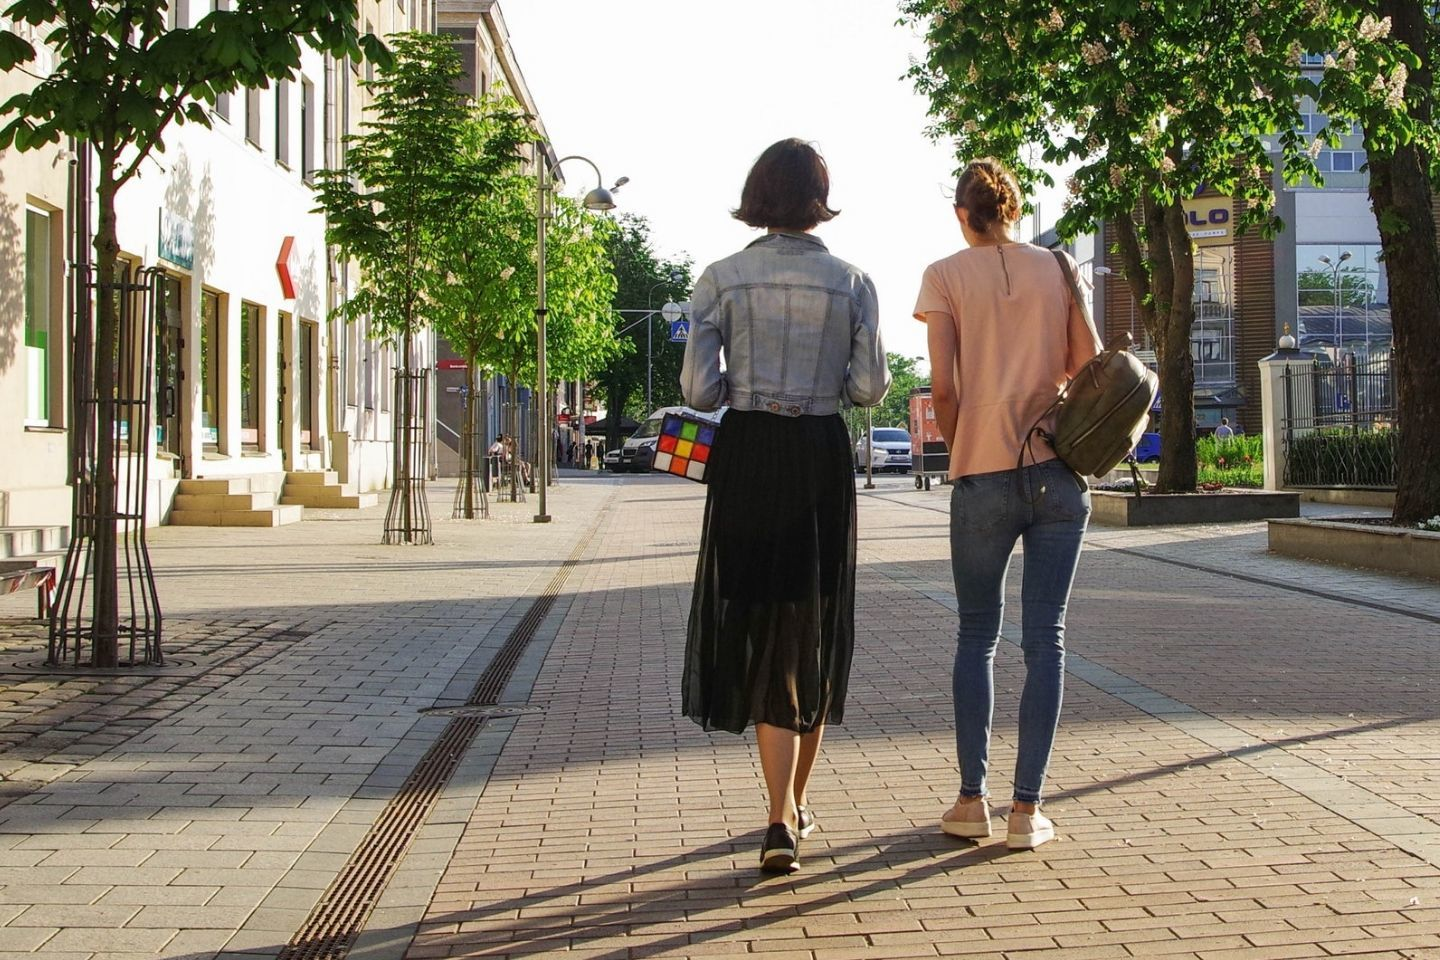 ladies walking in a city